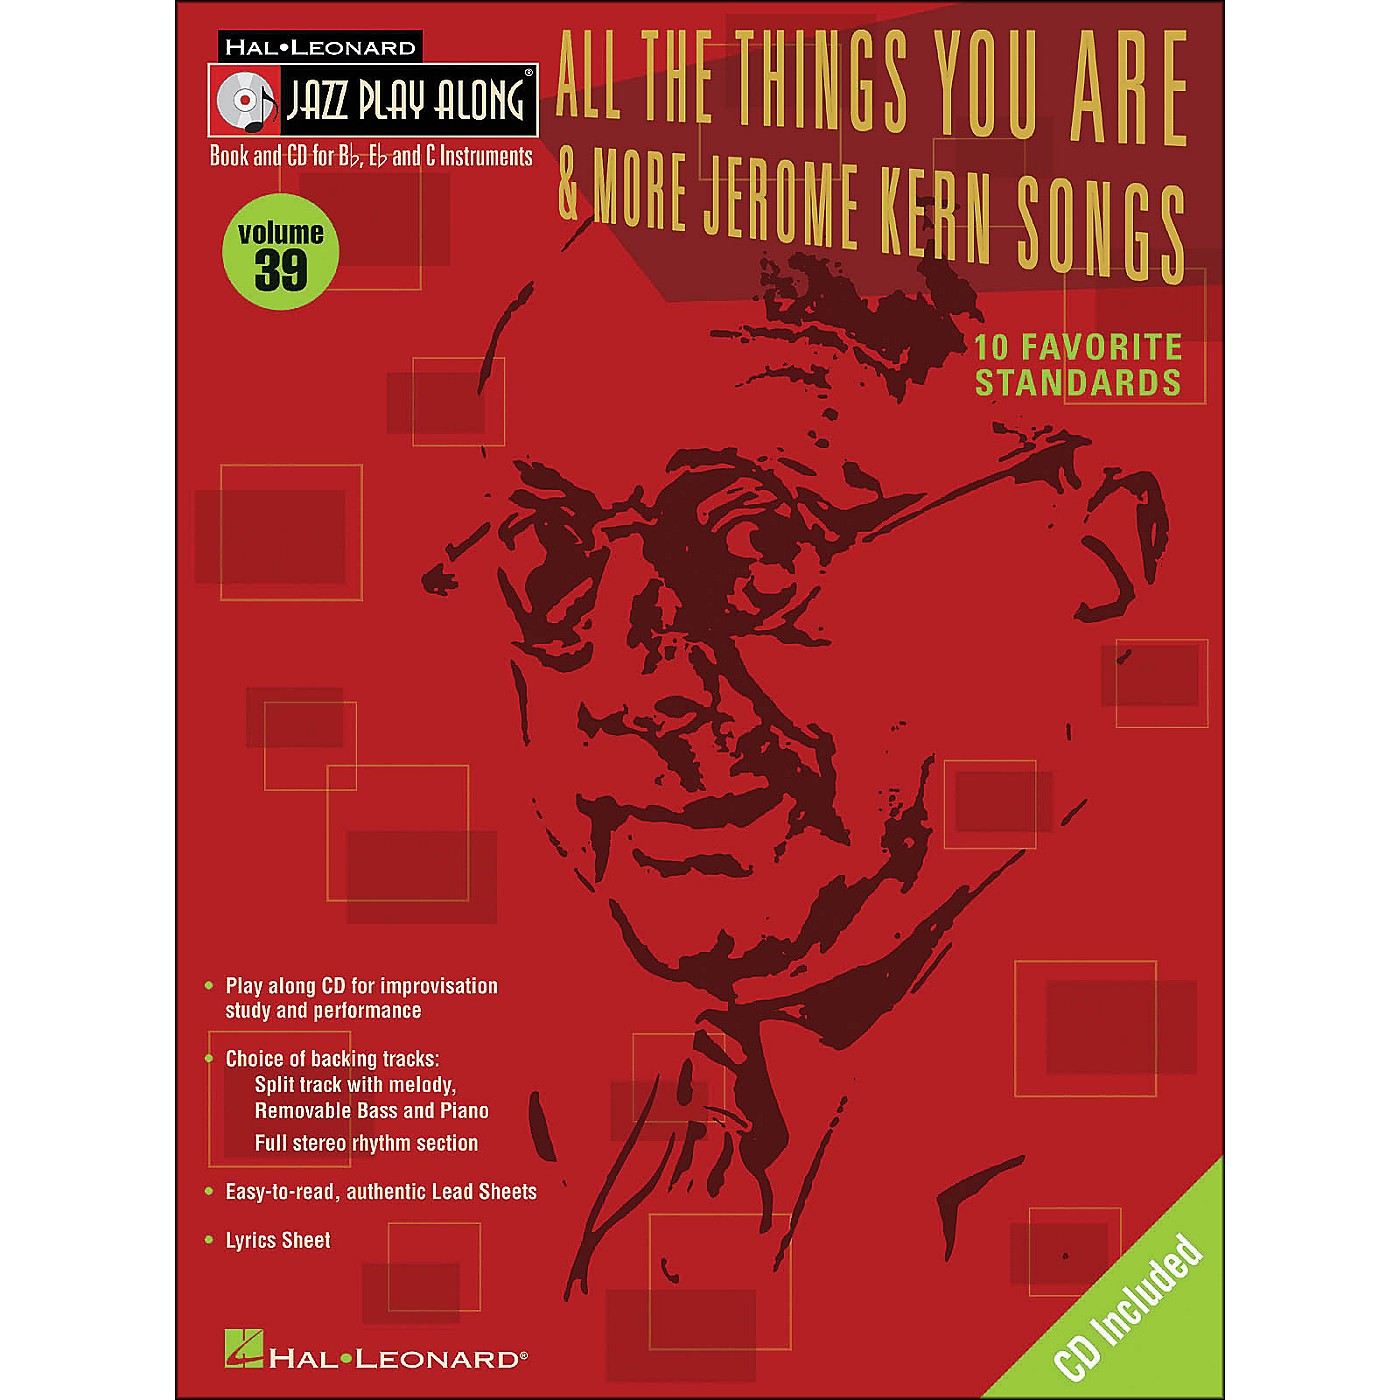 Hal Leonard All The Things You Are & More Jerome Kern Songs Jazz Play-Along Volume 39 Book/CD thumbnail